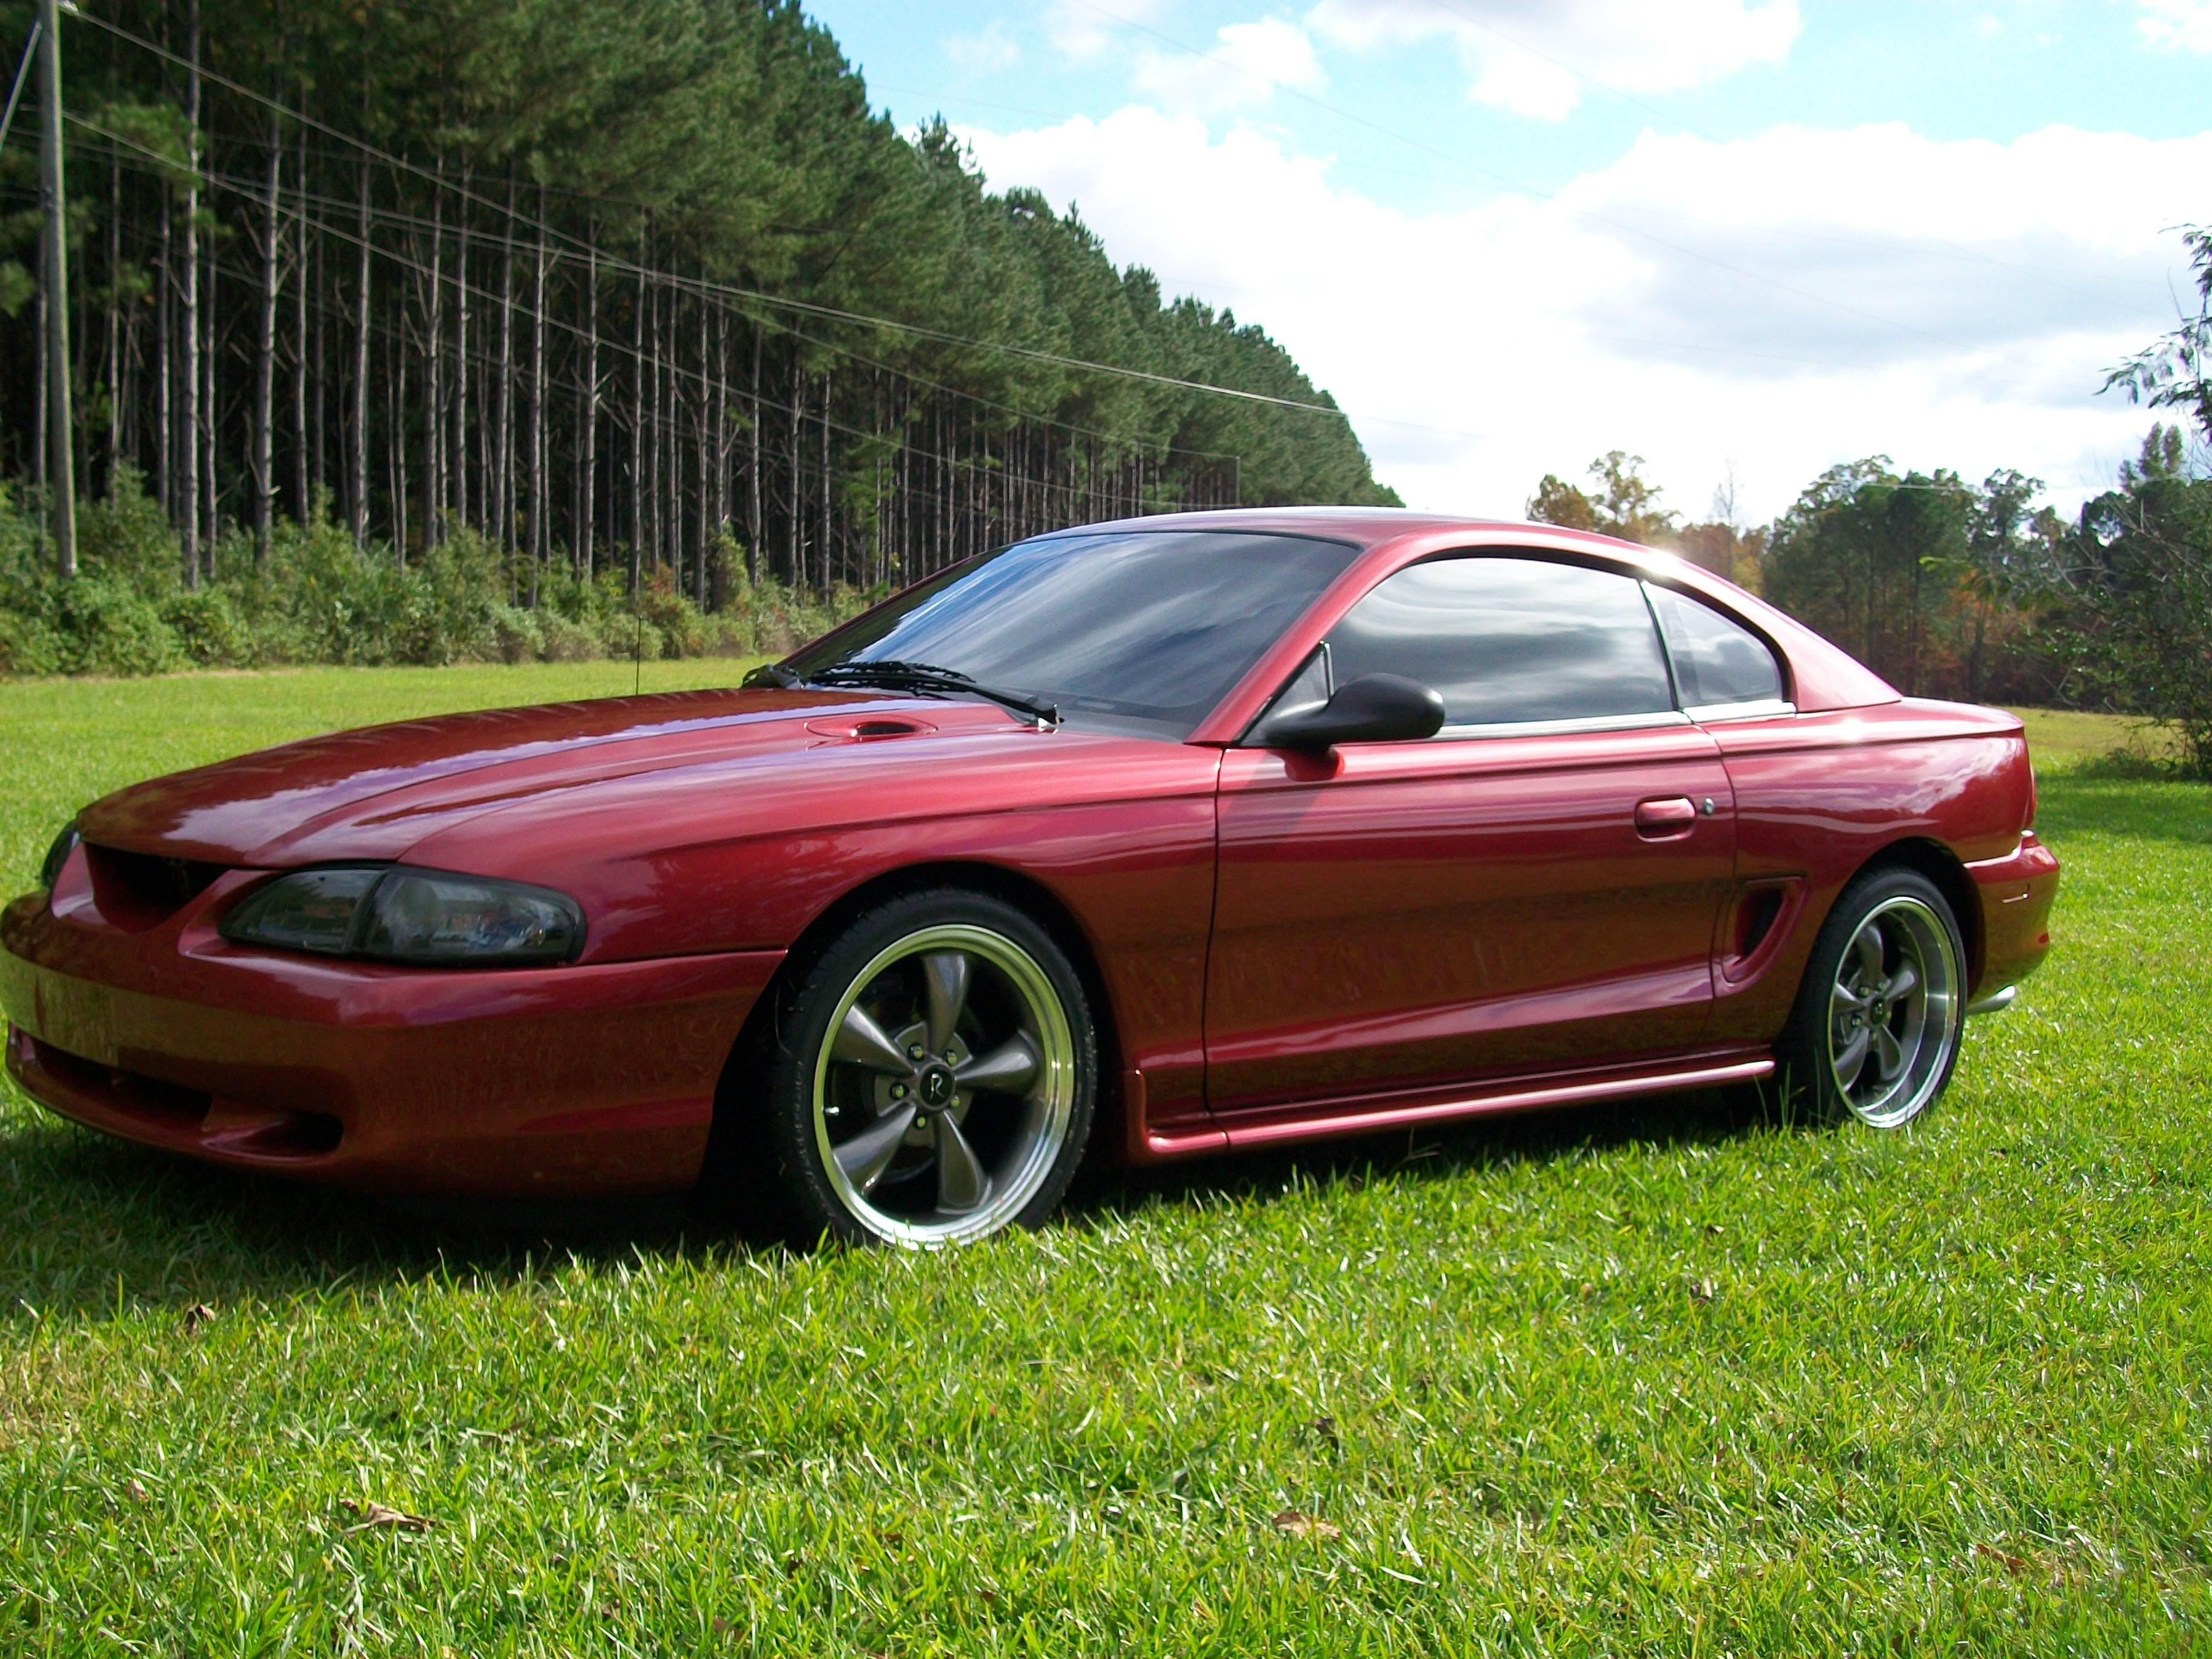 RedGT96 1996 Ford Mustang Specs, Photos, Modification Info